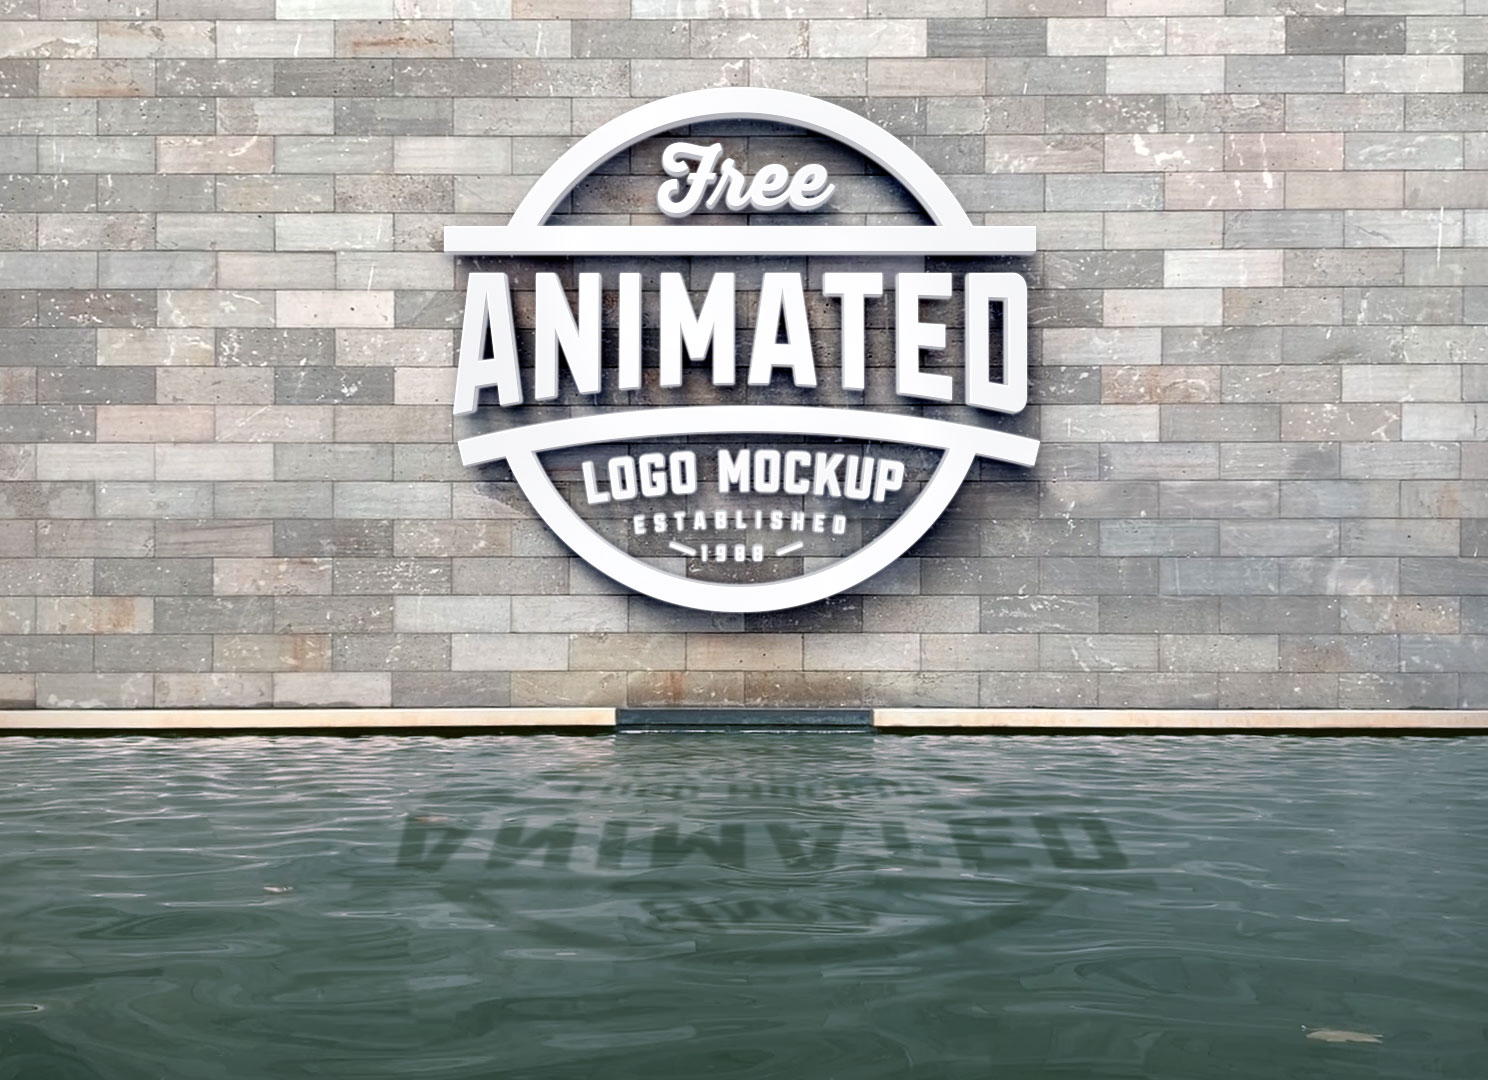 3D Logo Animated Mockup with Water Ripple Effect - Freebies